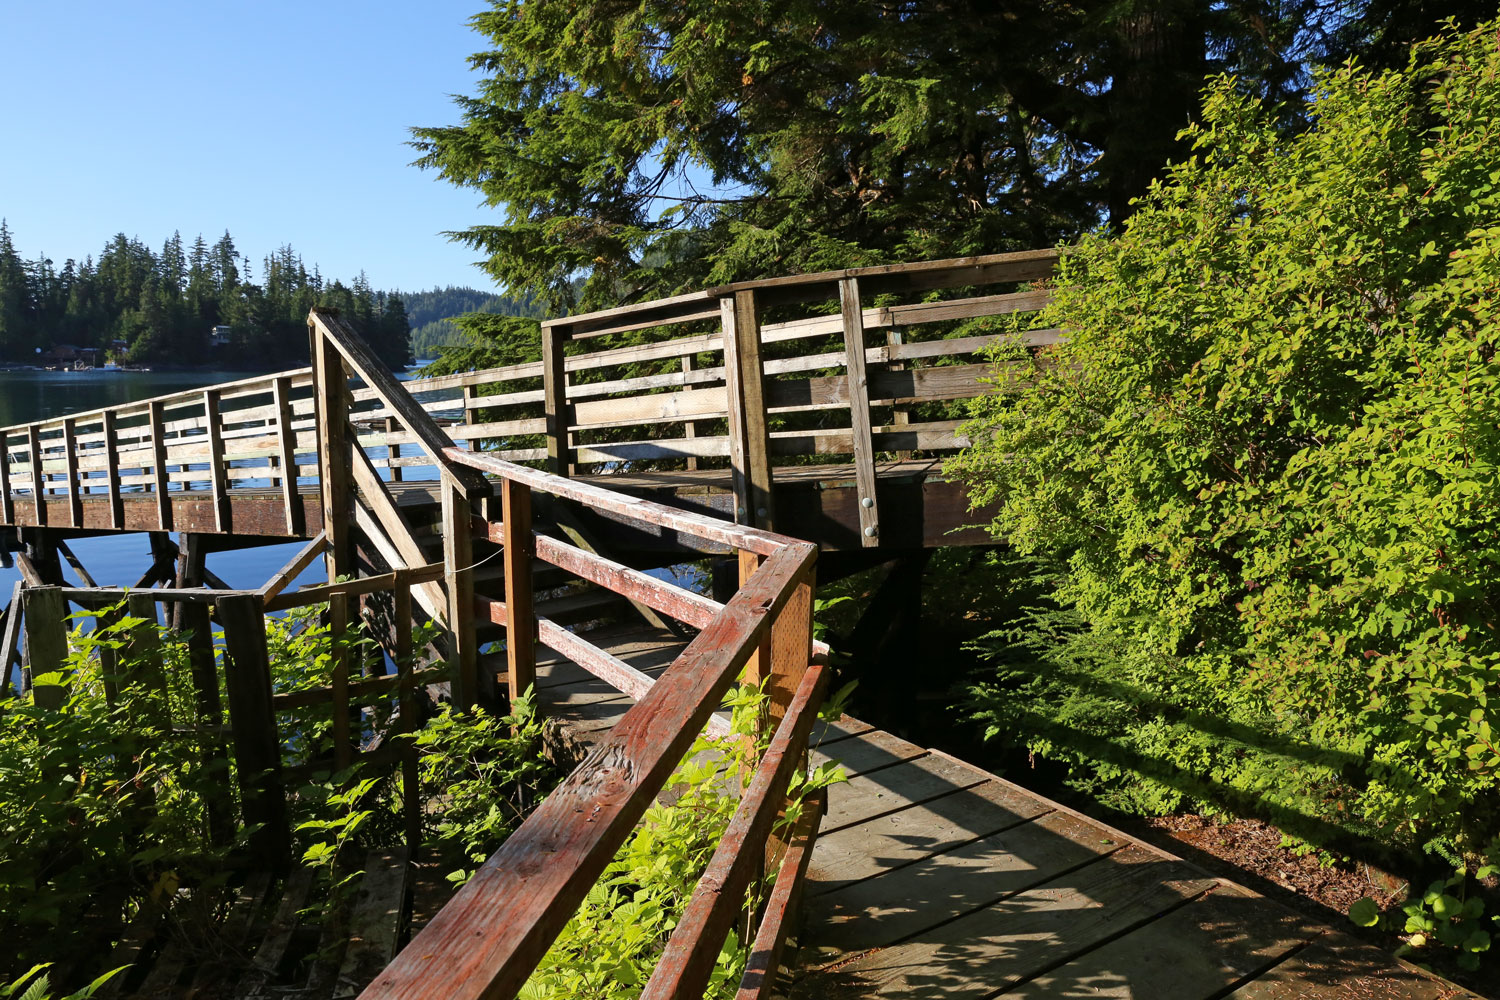 State dock left, boardwalk to school right.